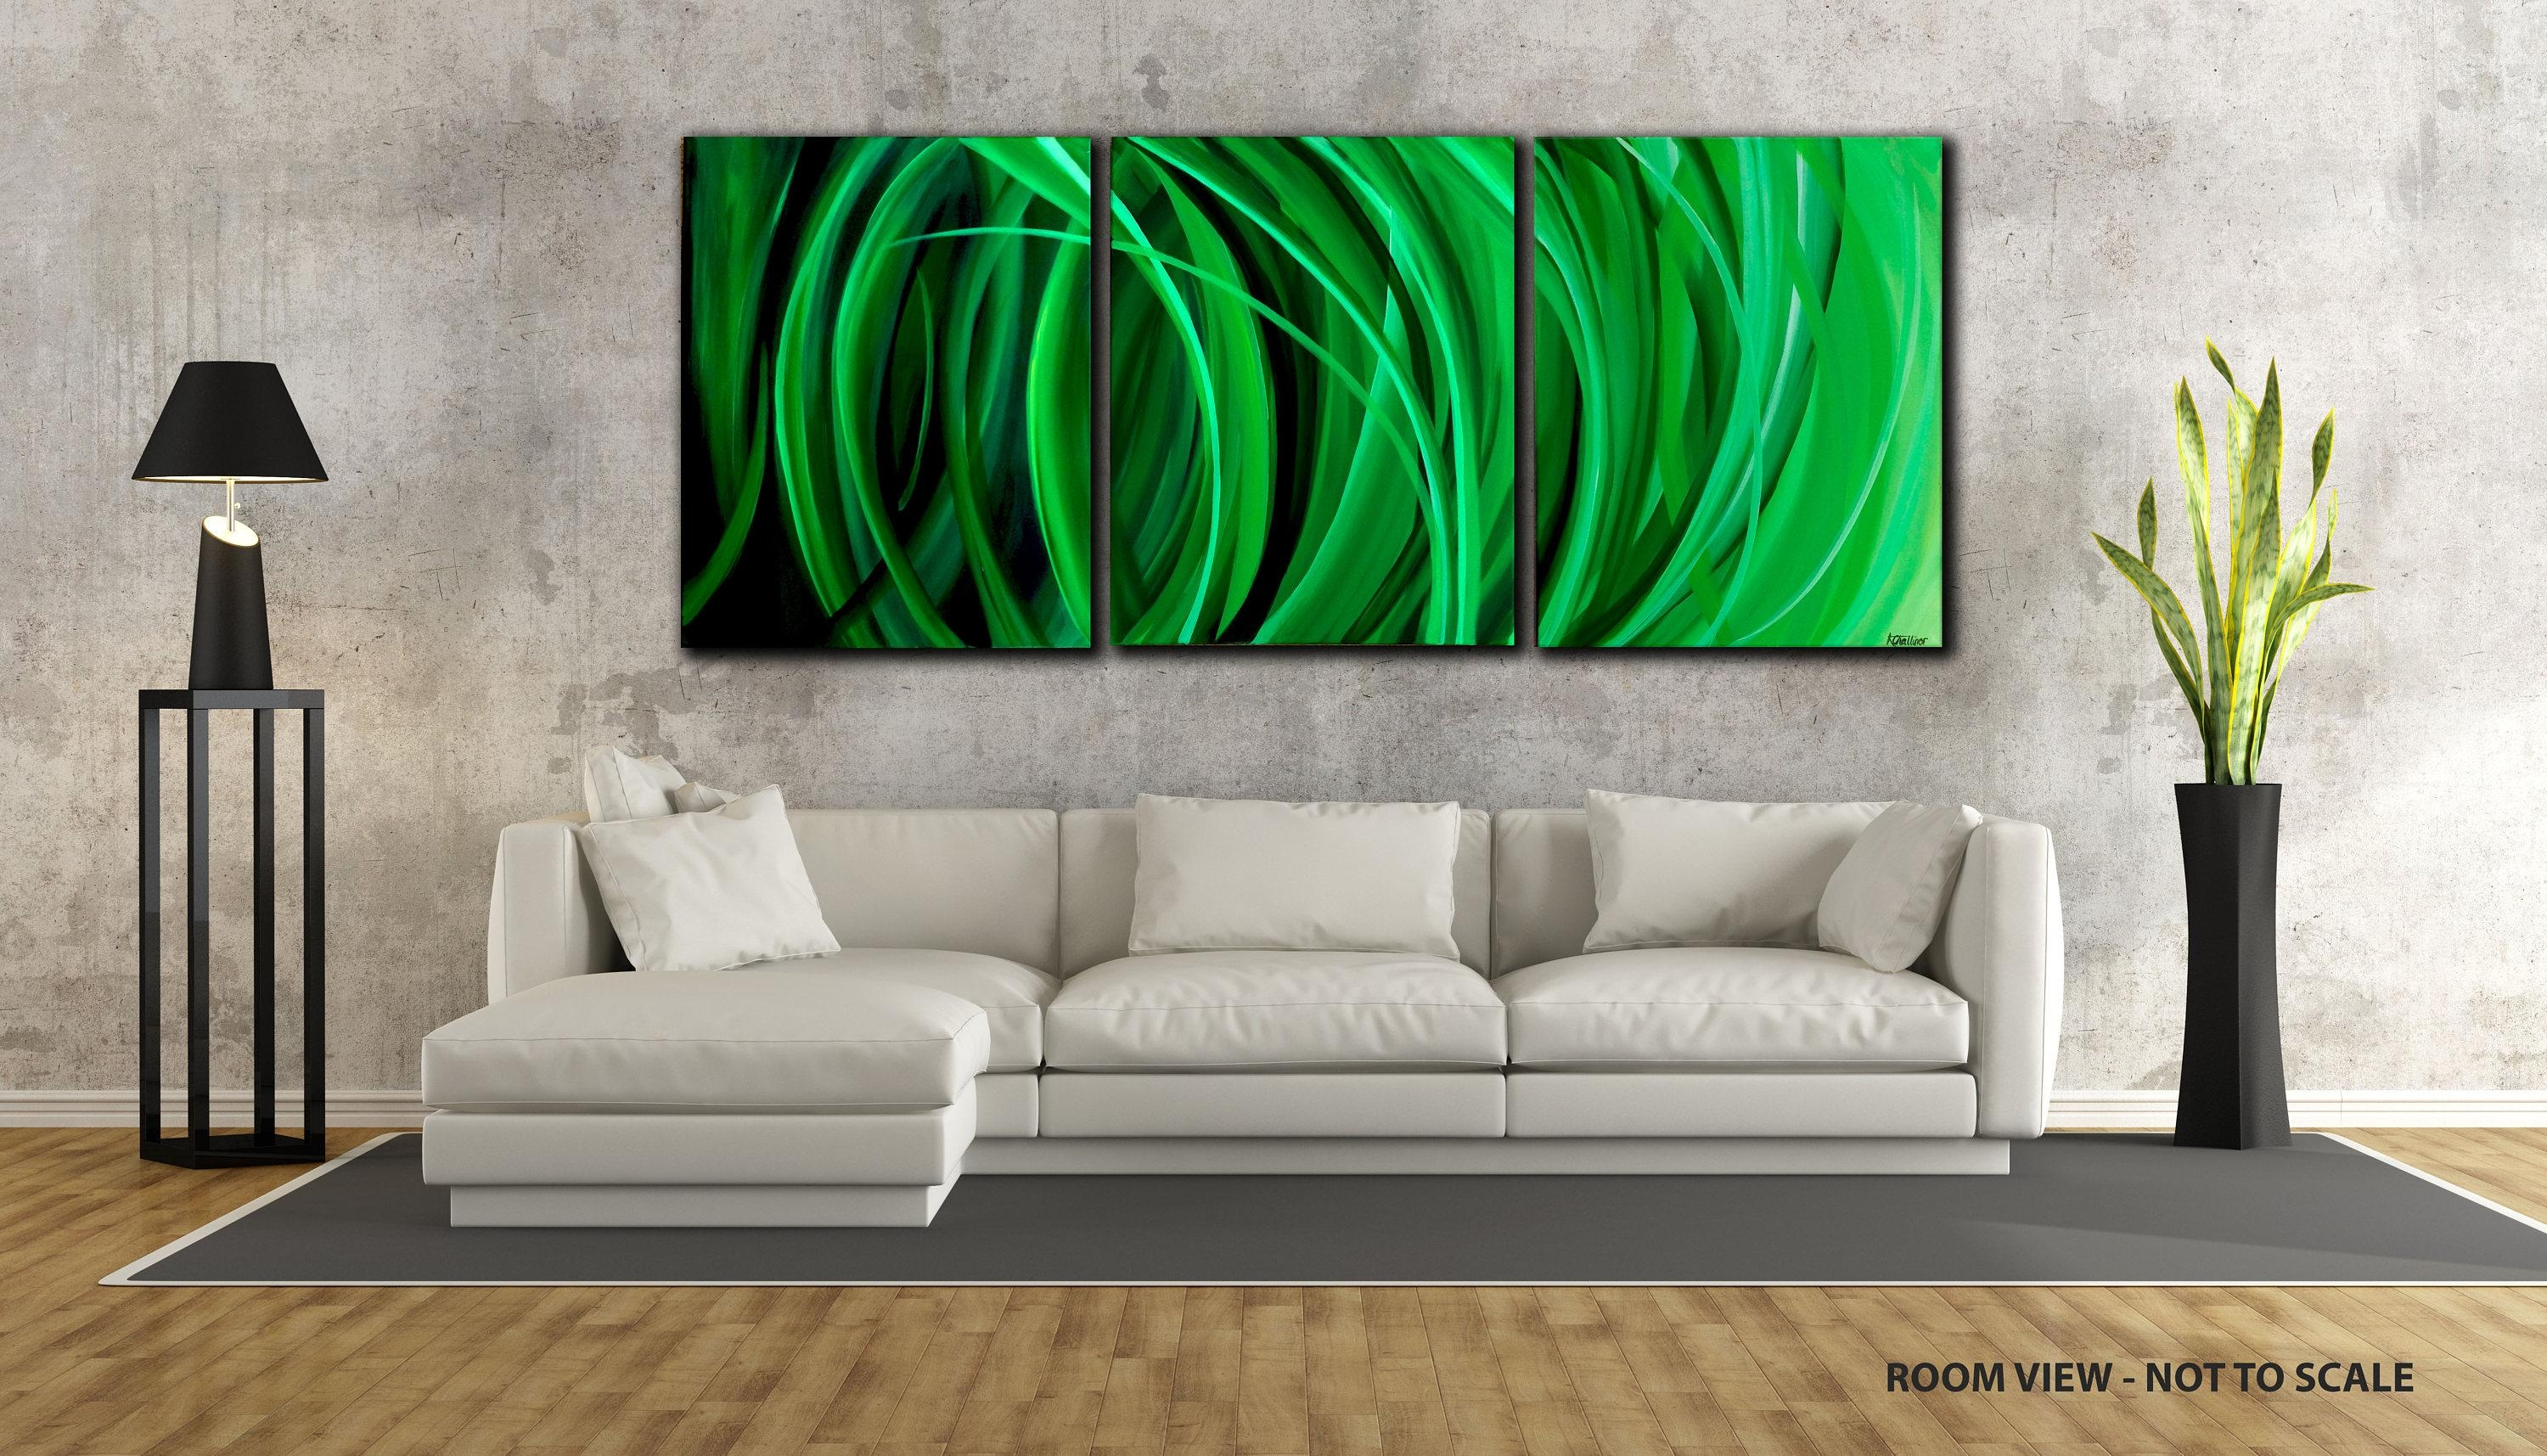 48 Large, Original Abstract Painting, Canvas, Wall Art, Modern inside Large Green Wall Art